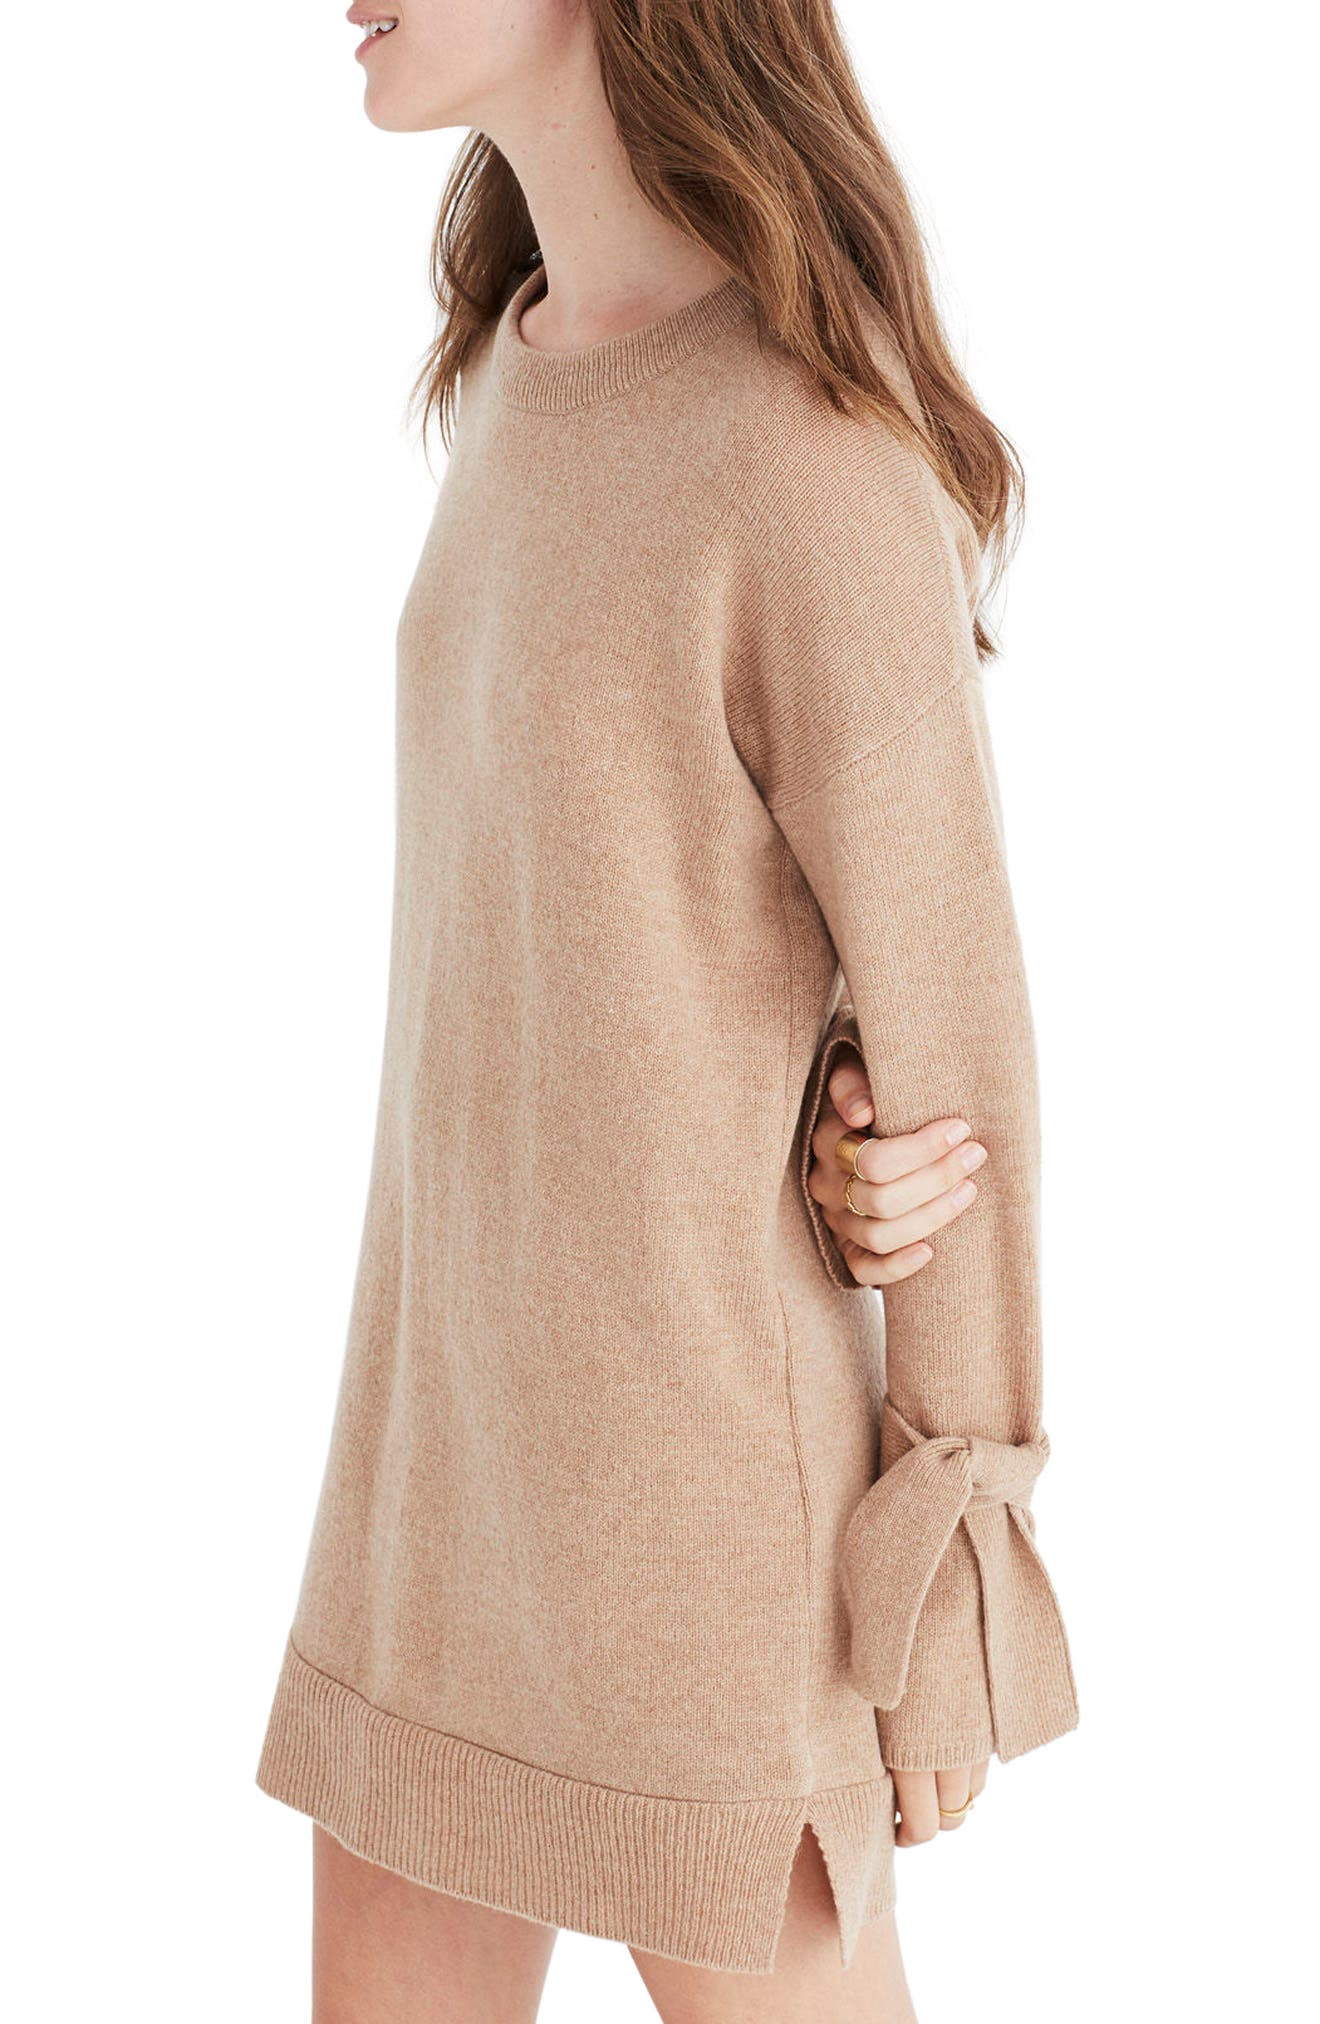 Madewell Tie Cuff Sweater Dress